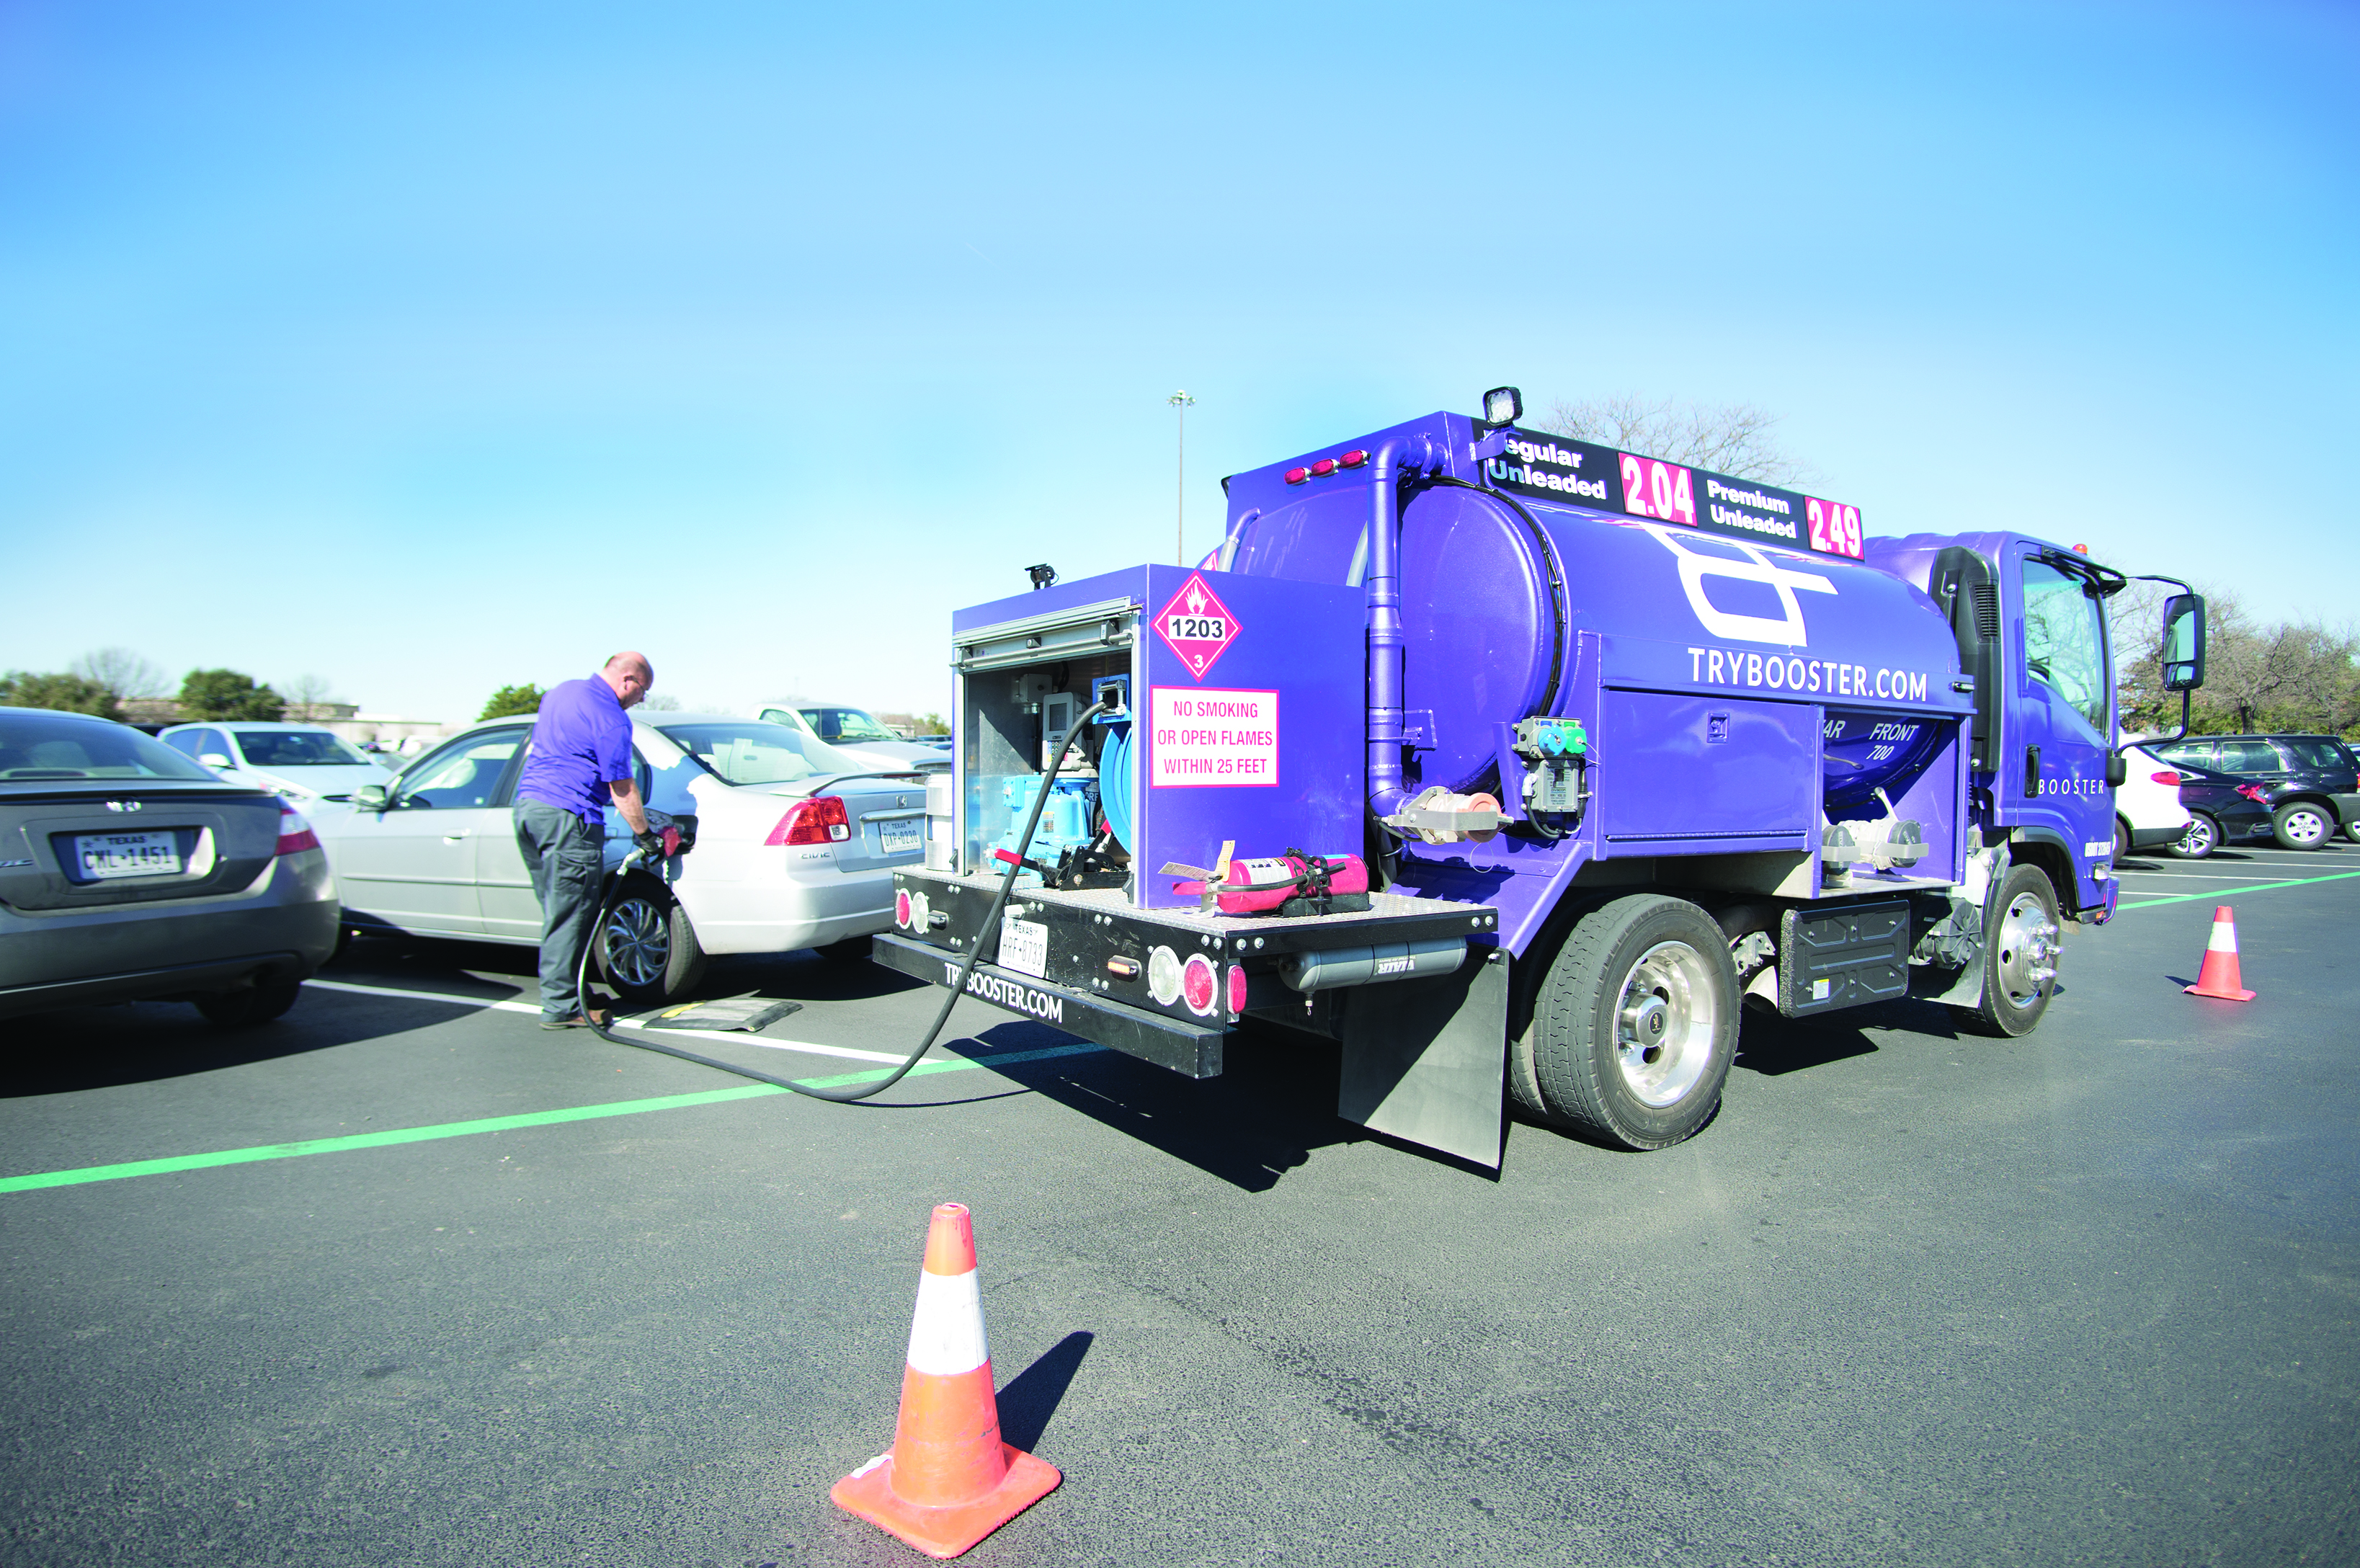 Gas delivery company serves cars on campus